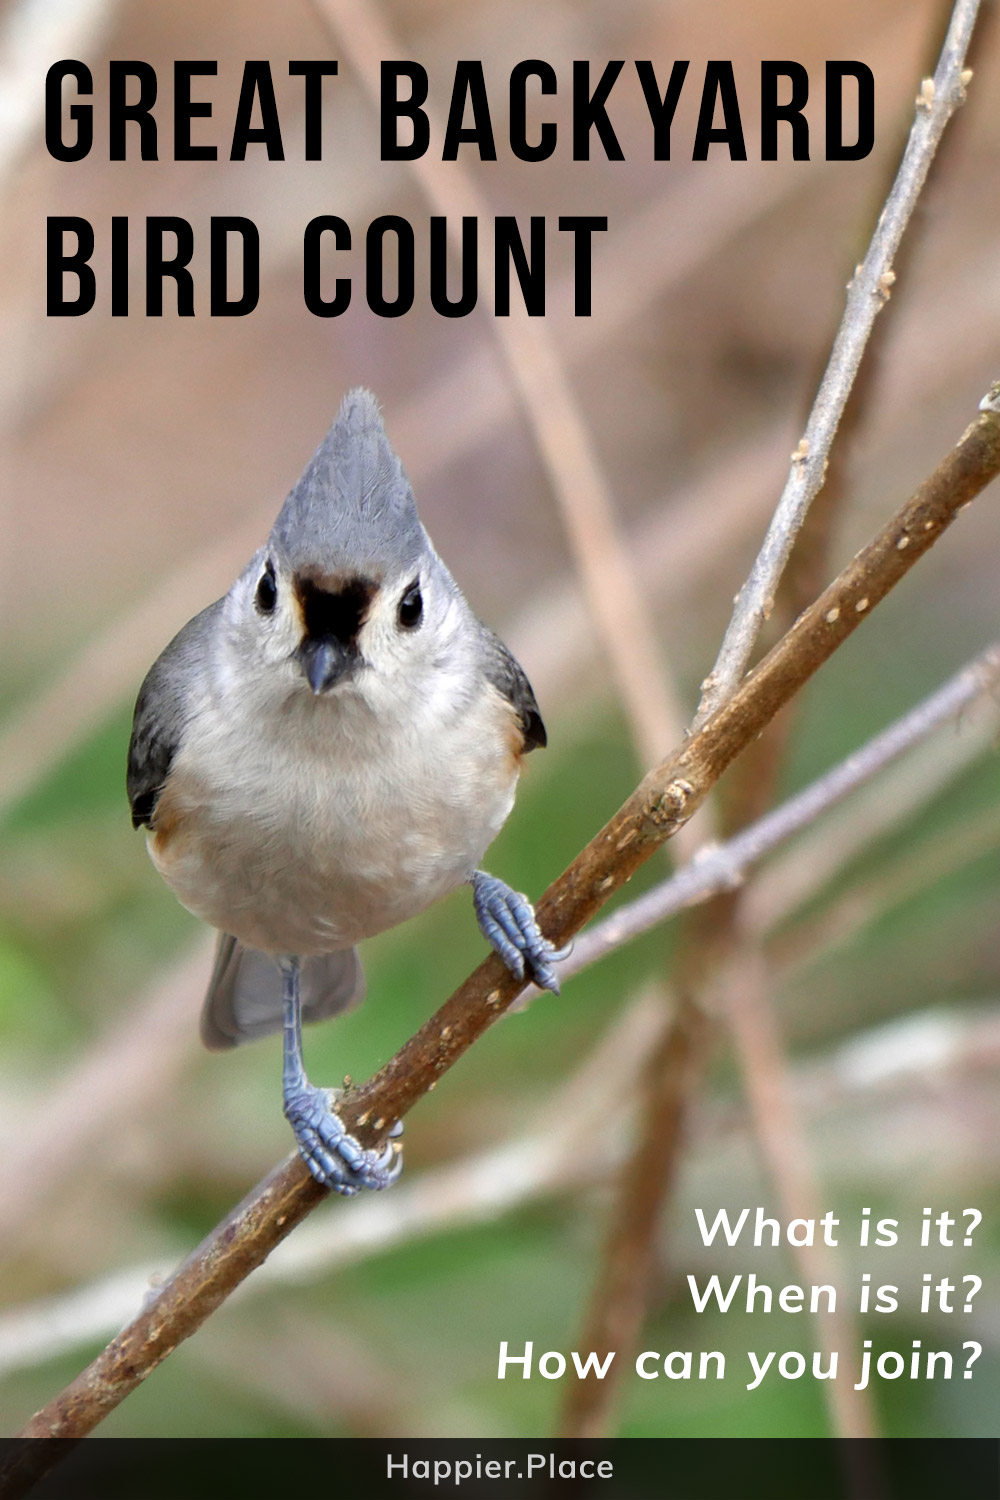 Tufted Titmouse representing the Ultimate Guide to the Great Backyard Bird Count and how to participate and win. What is it? When does it take place? How can you join the fun?